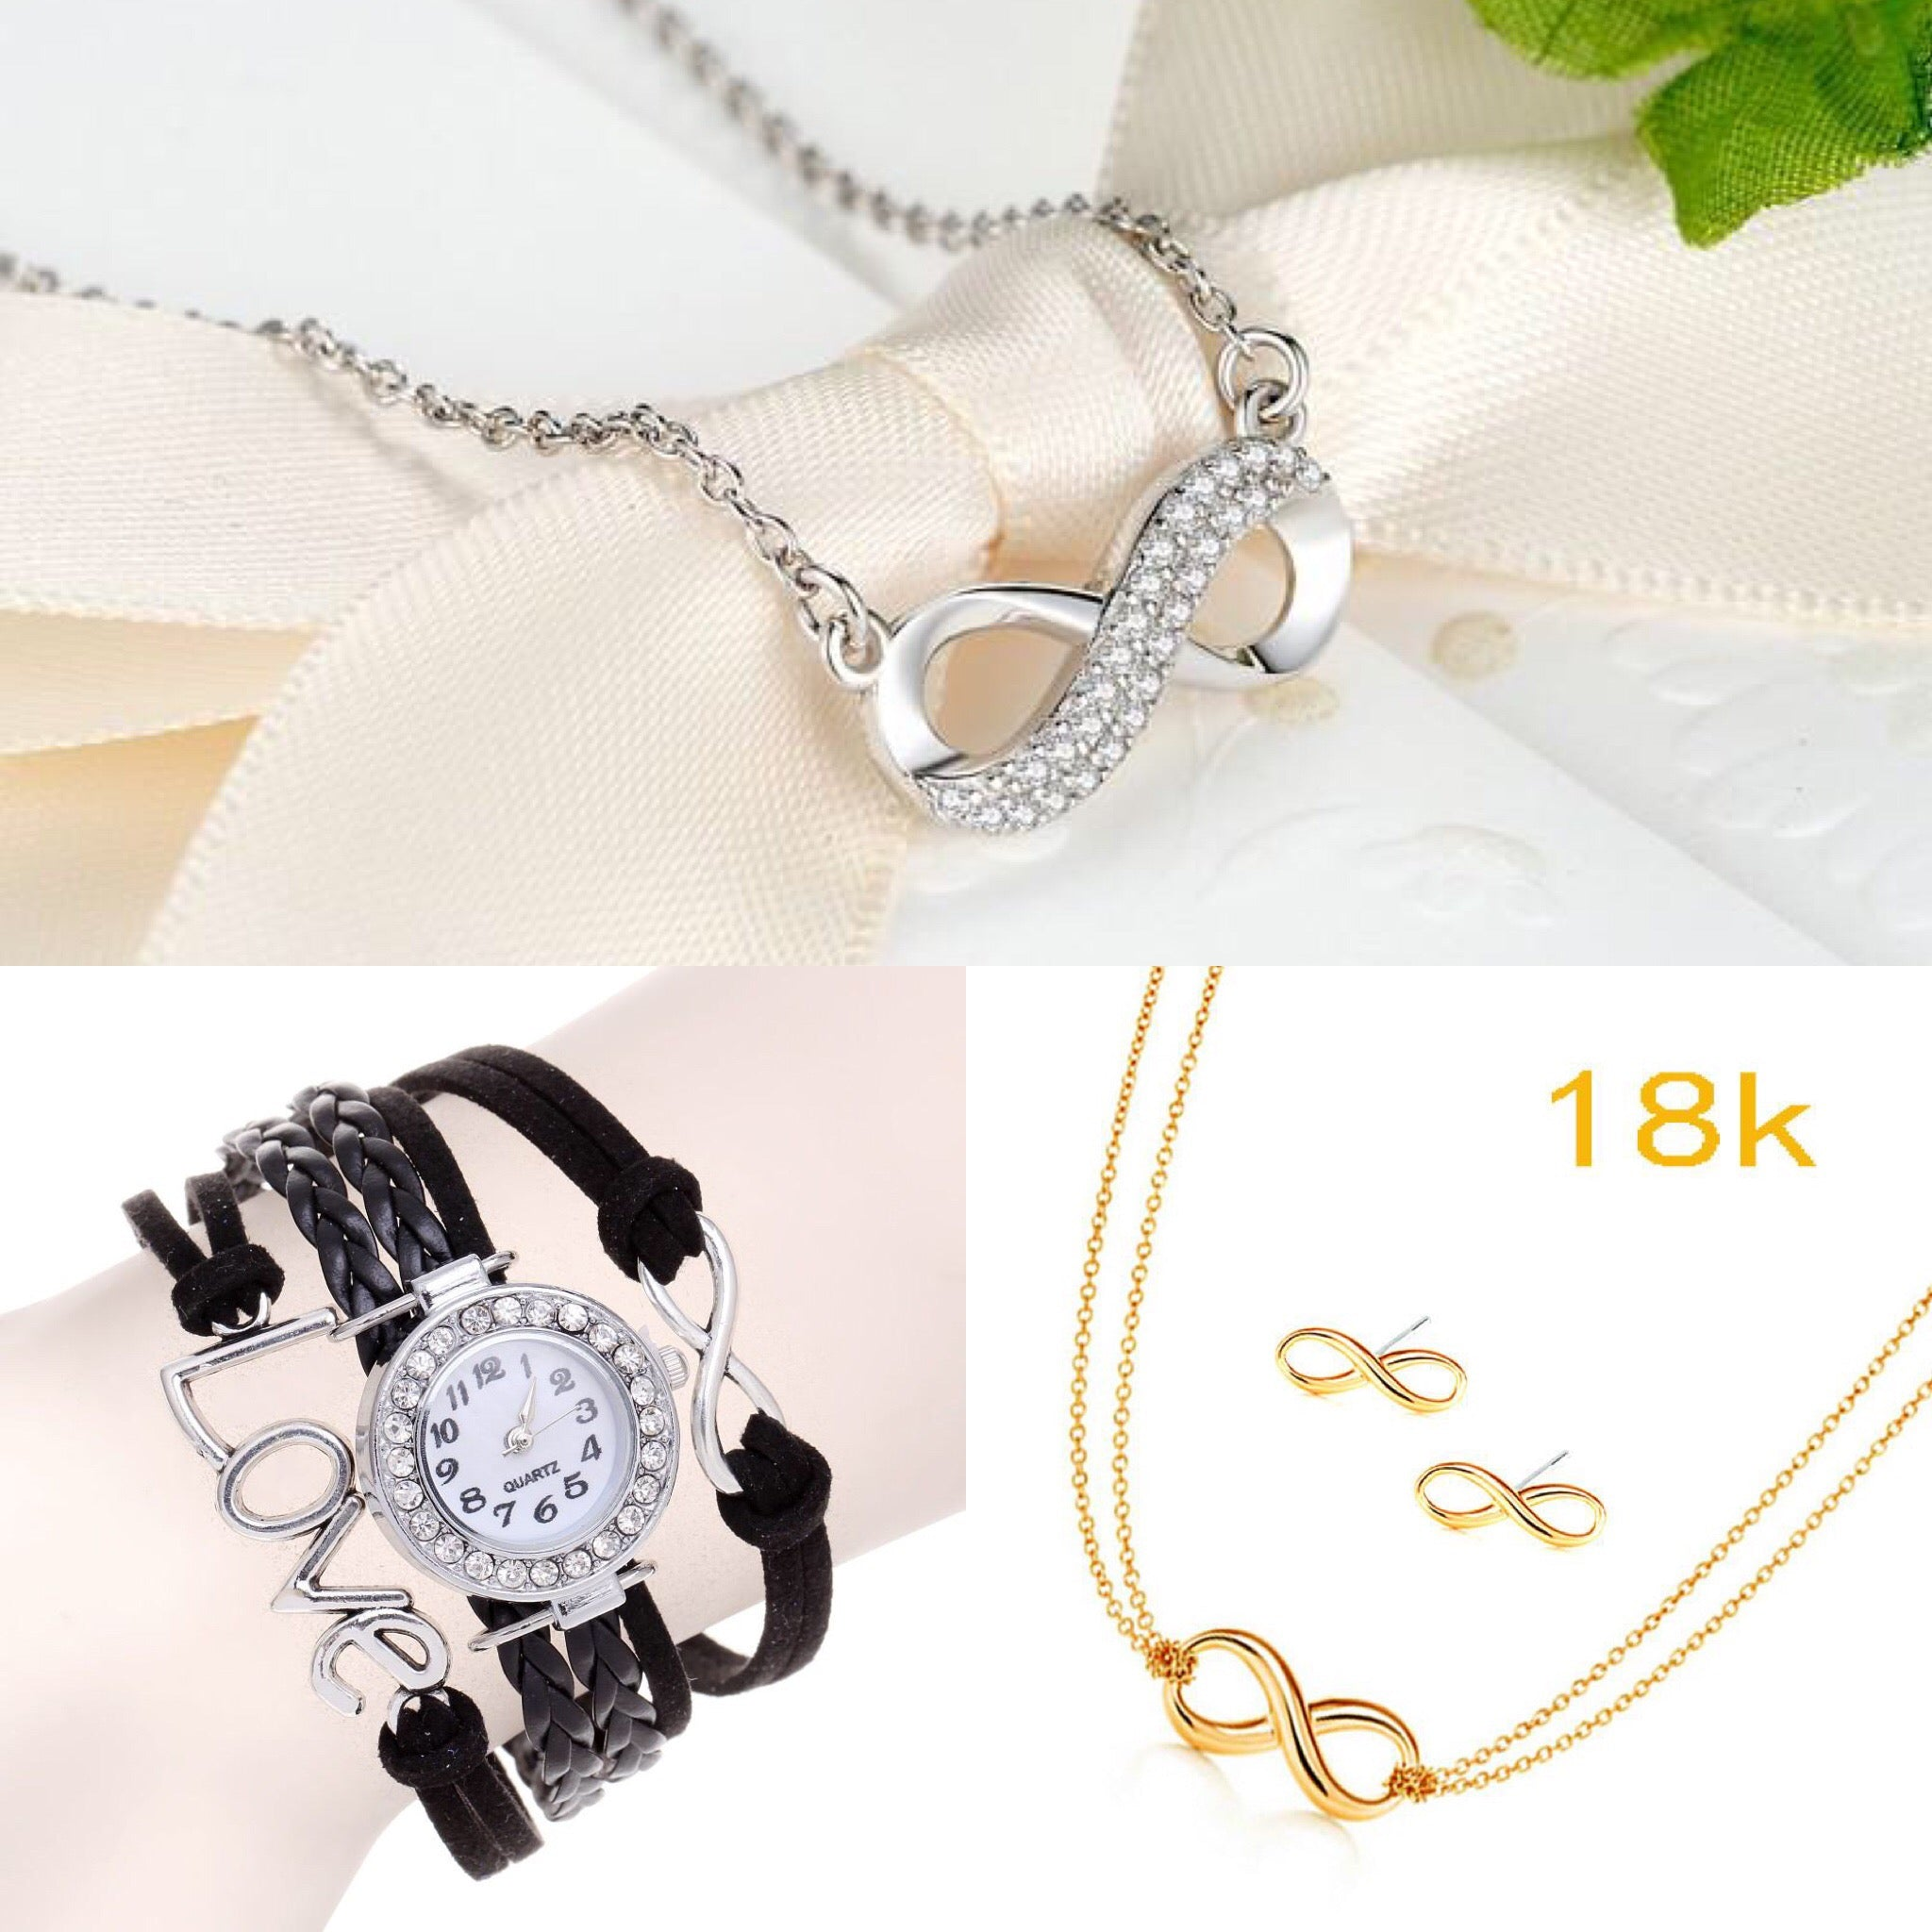 We've Got Beautiful Infinity Symbol Jewelry for Sale – Spread Positivity Everywhere You Go!